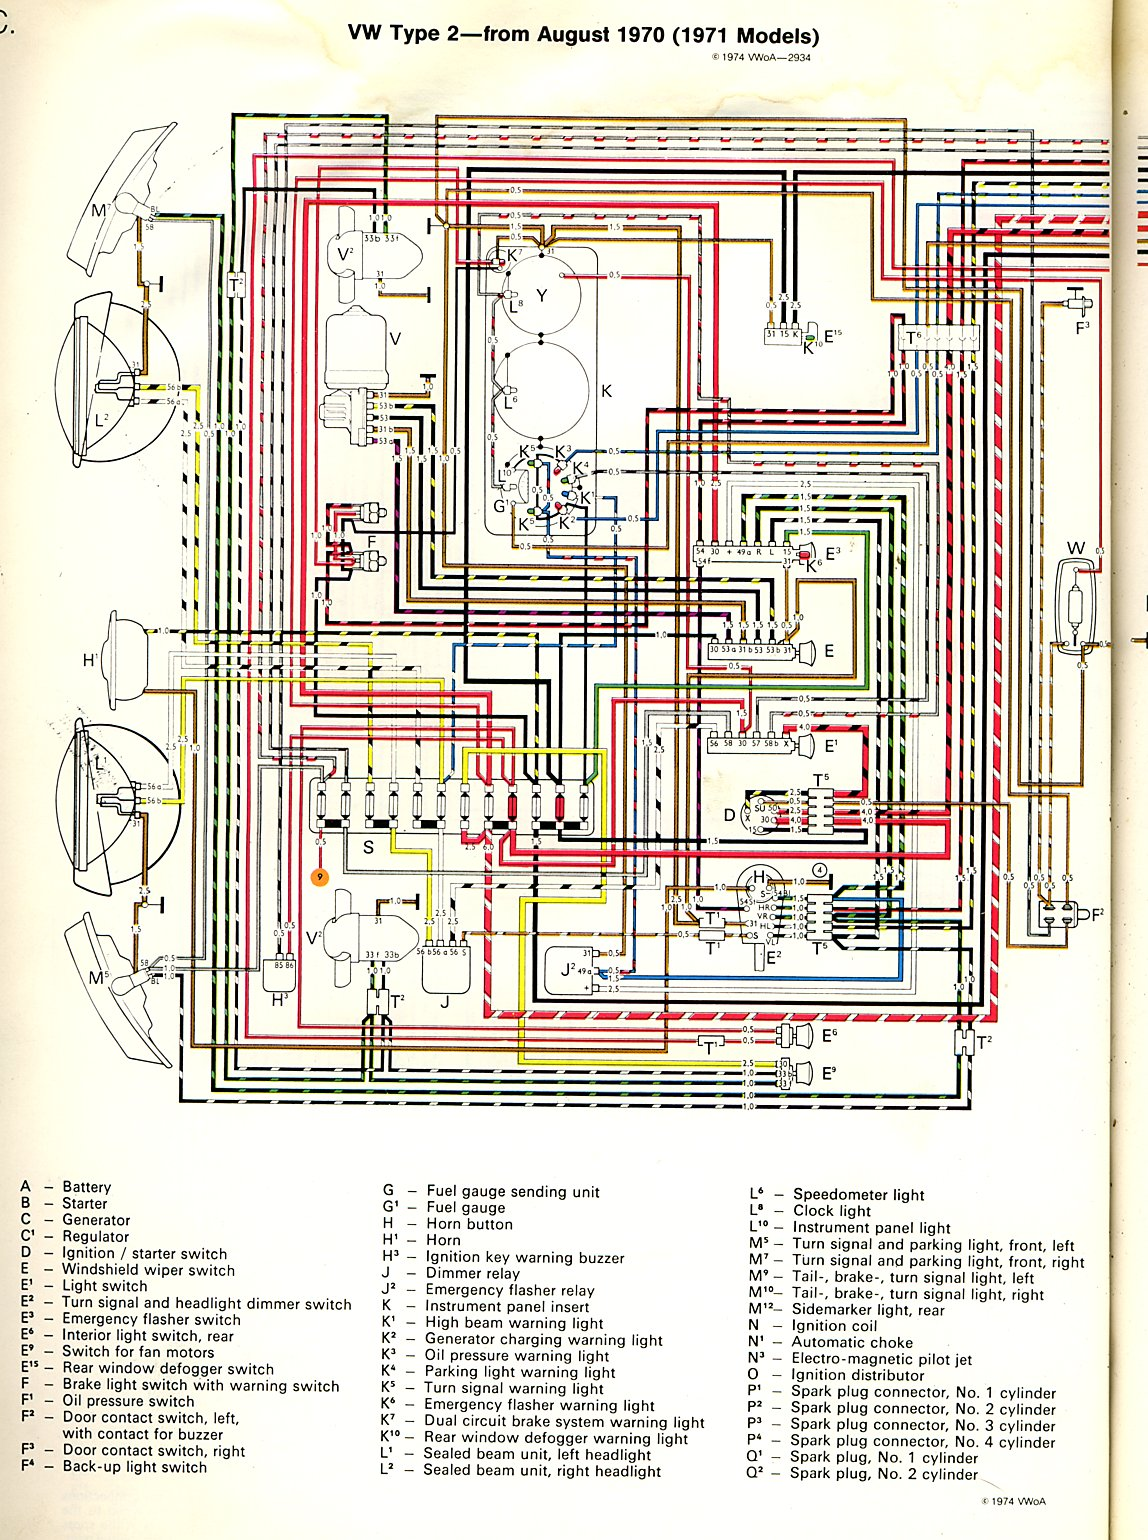 Type 2 Wiring Diagrams 65 Mustang Wiper Switch Diagram Free Download